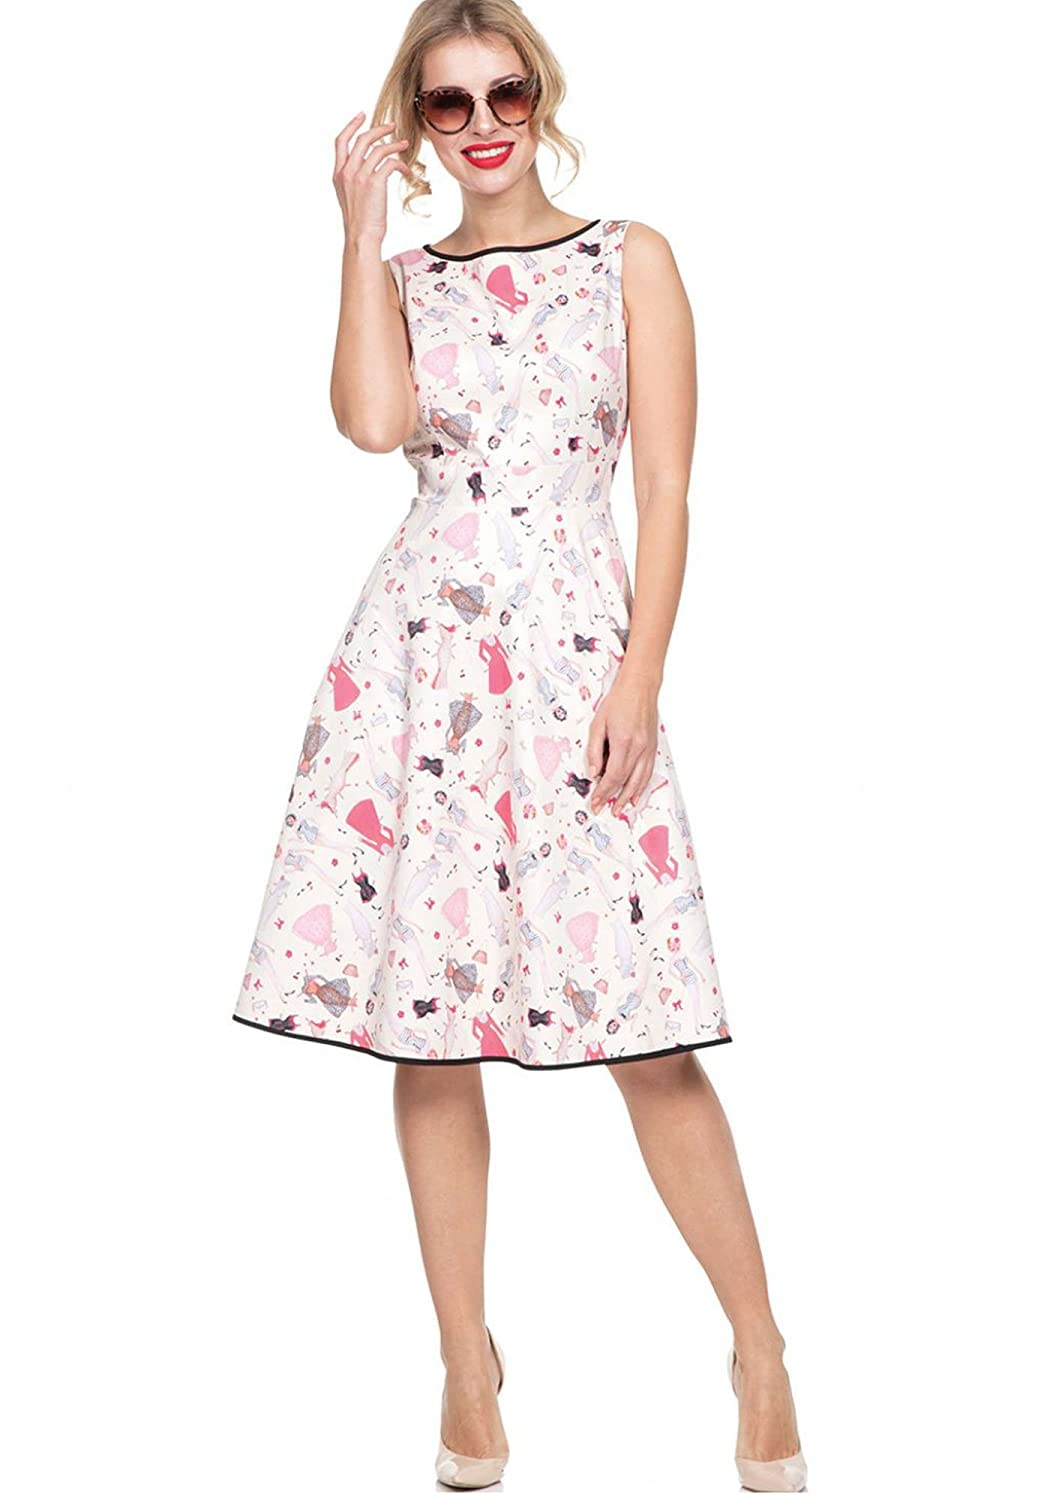 Voodoo Vixen Jacqueline Women's 1950's Inspired Retro Paper Doll Pink Dress Printed Sleeveless ALine Flared Dress